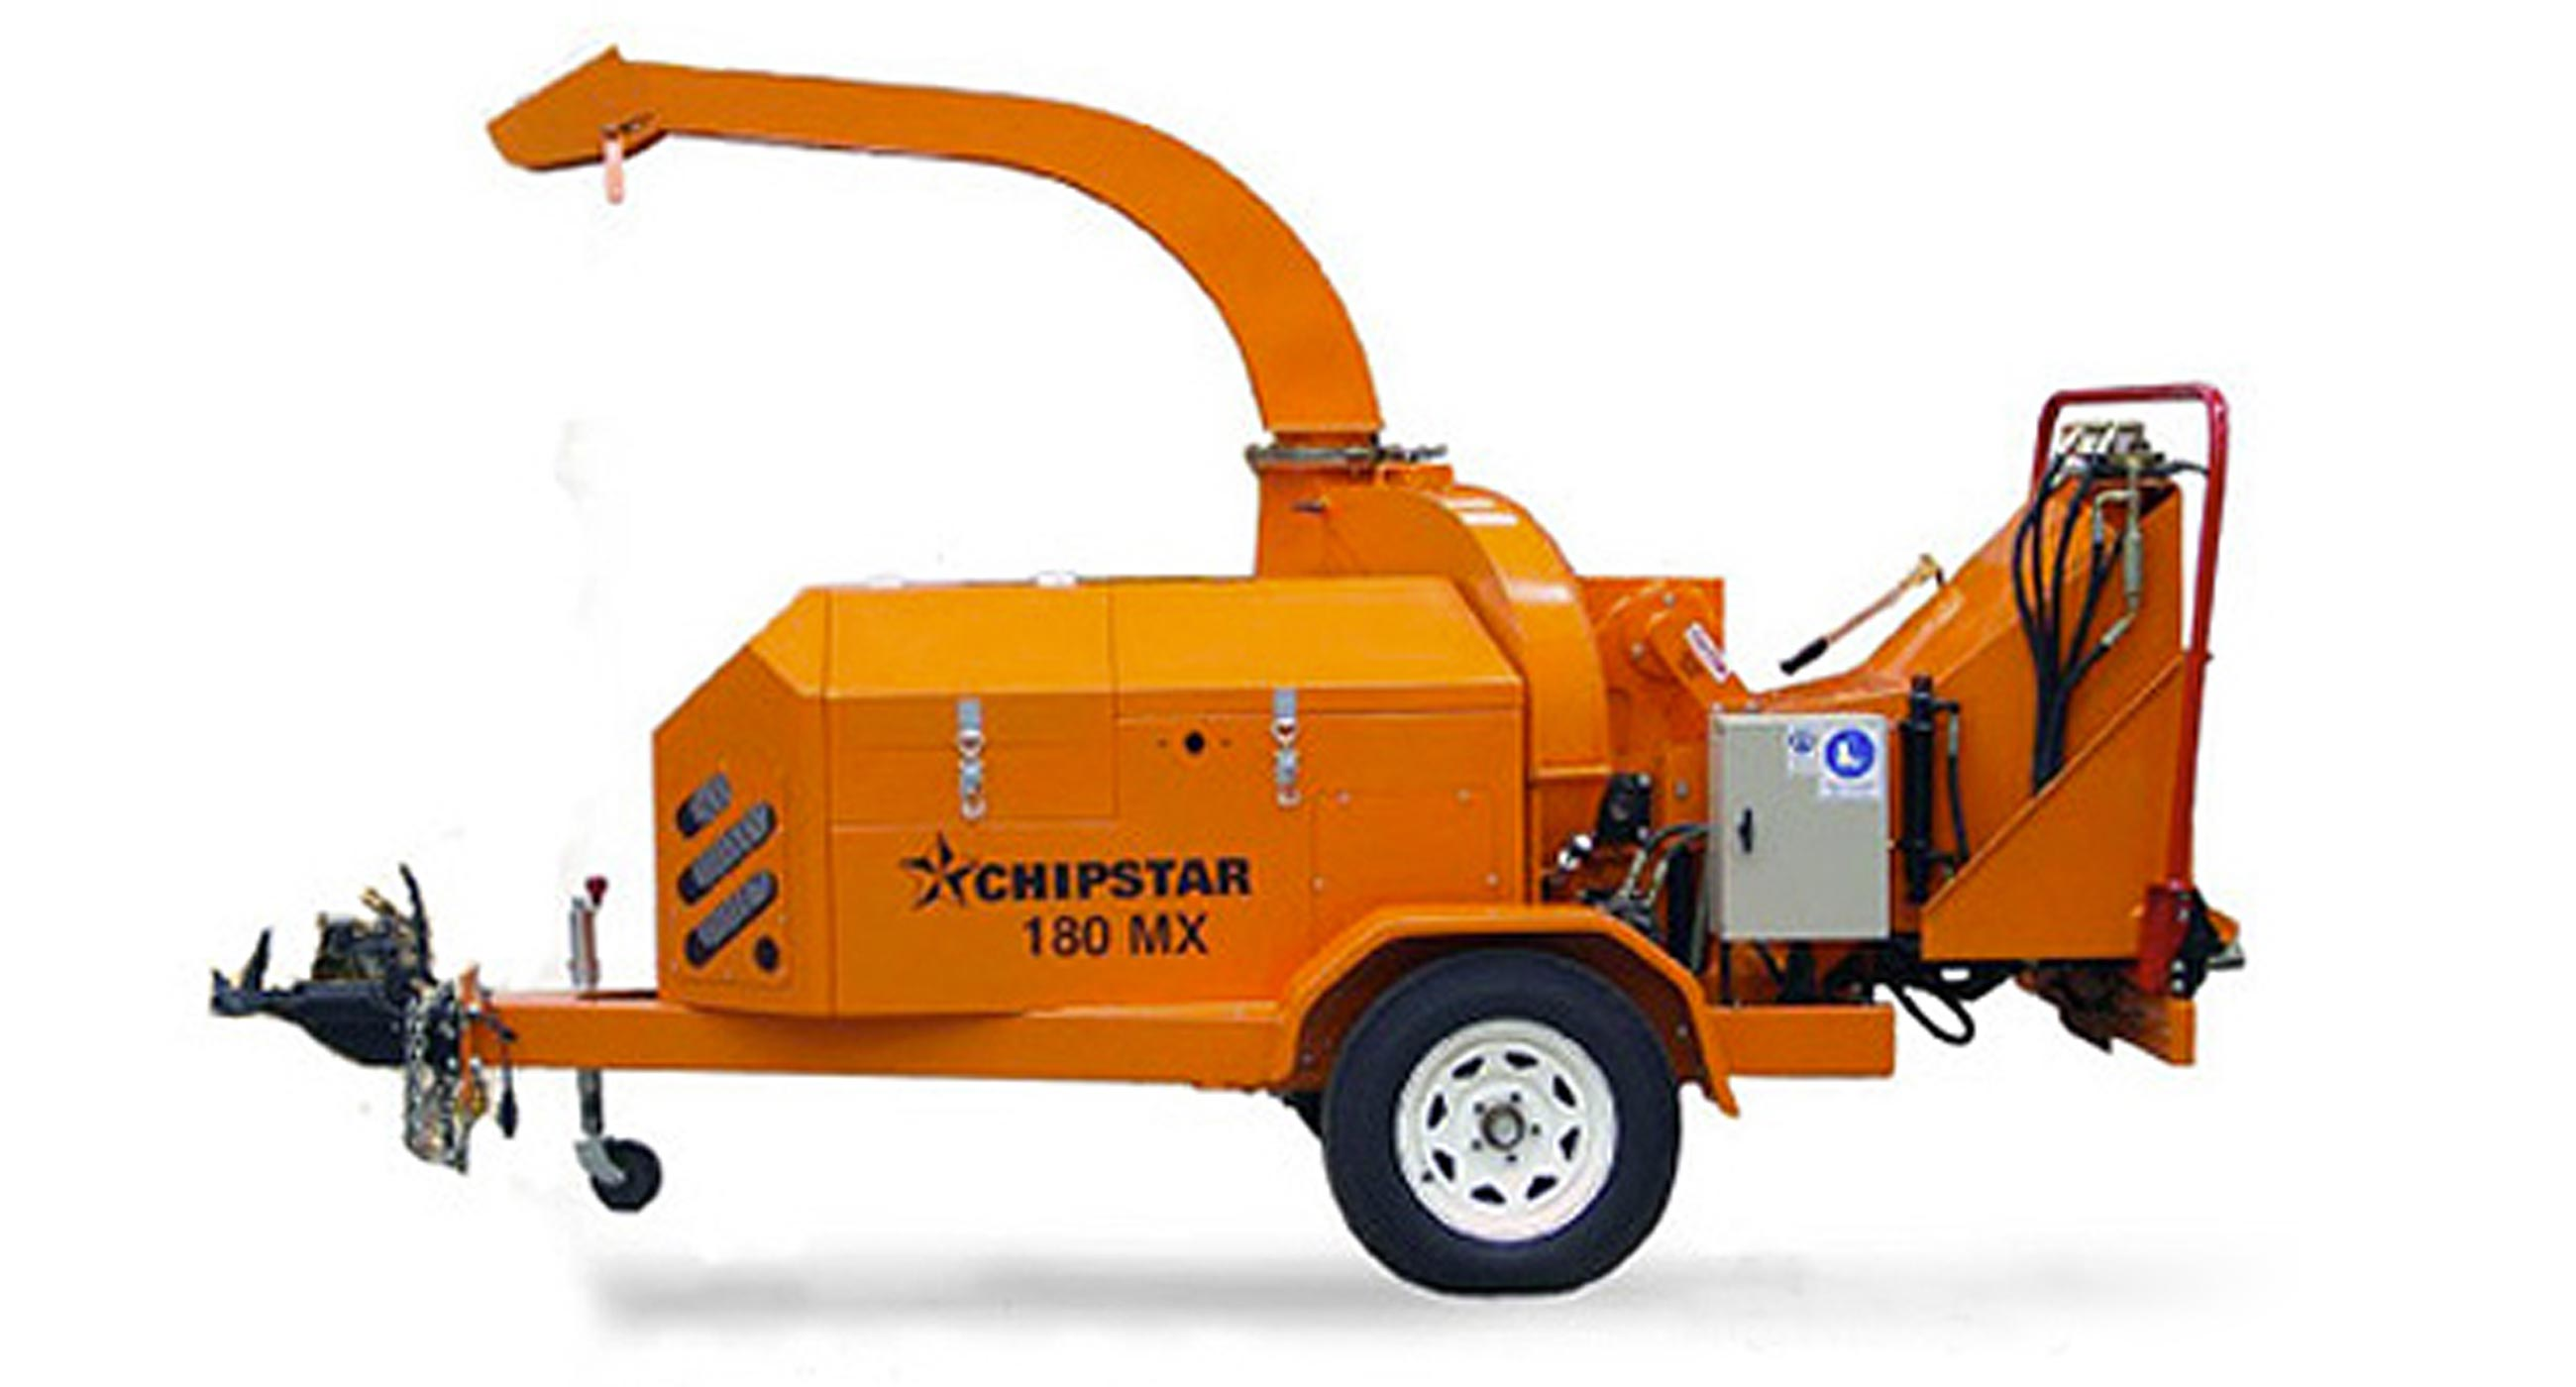 Chipstar 180 MX Chipper Mulcher